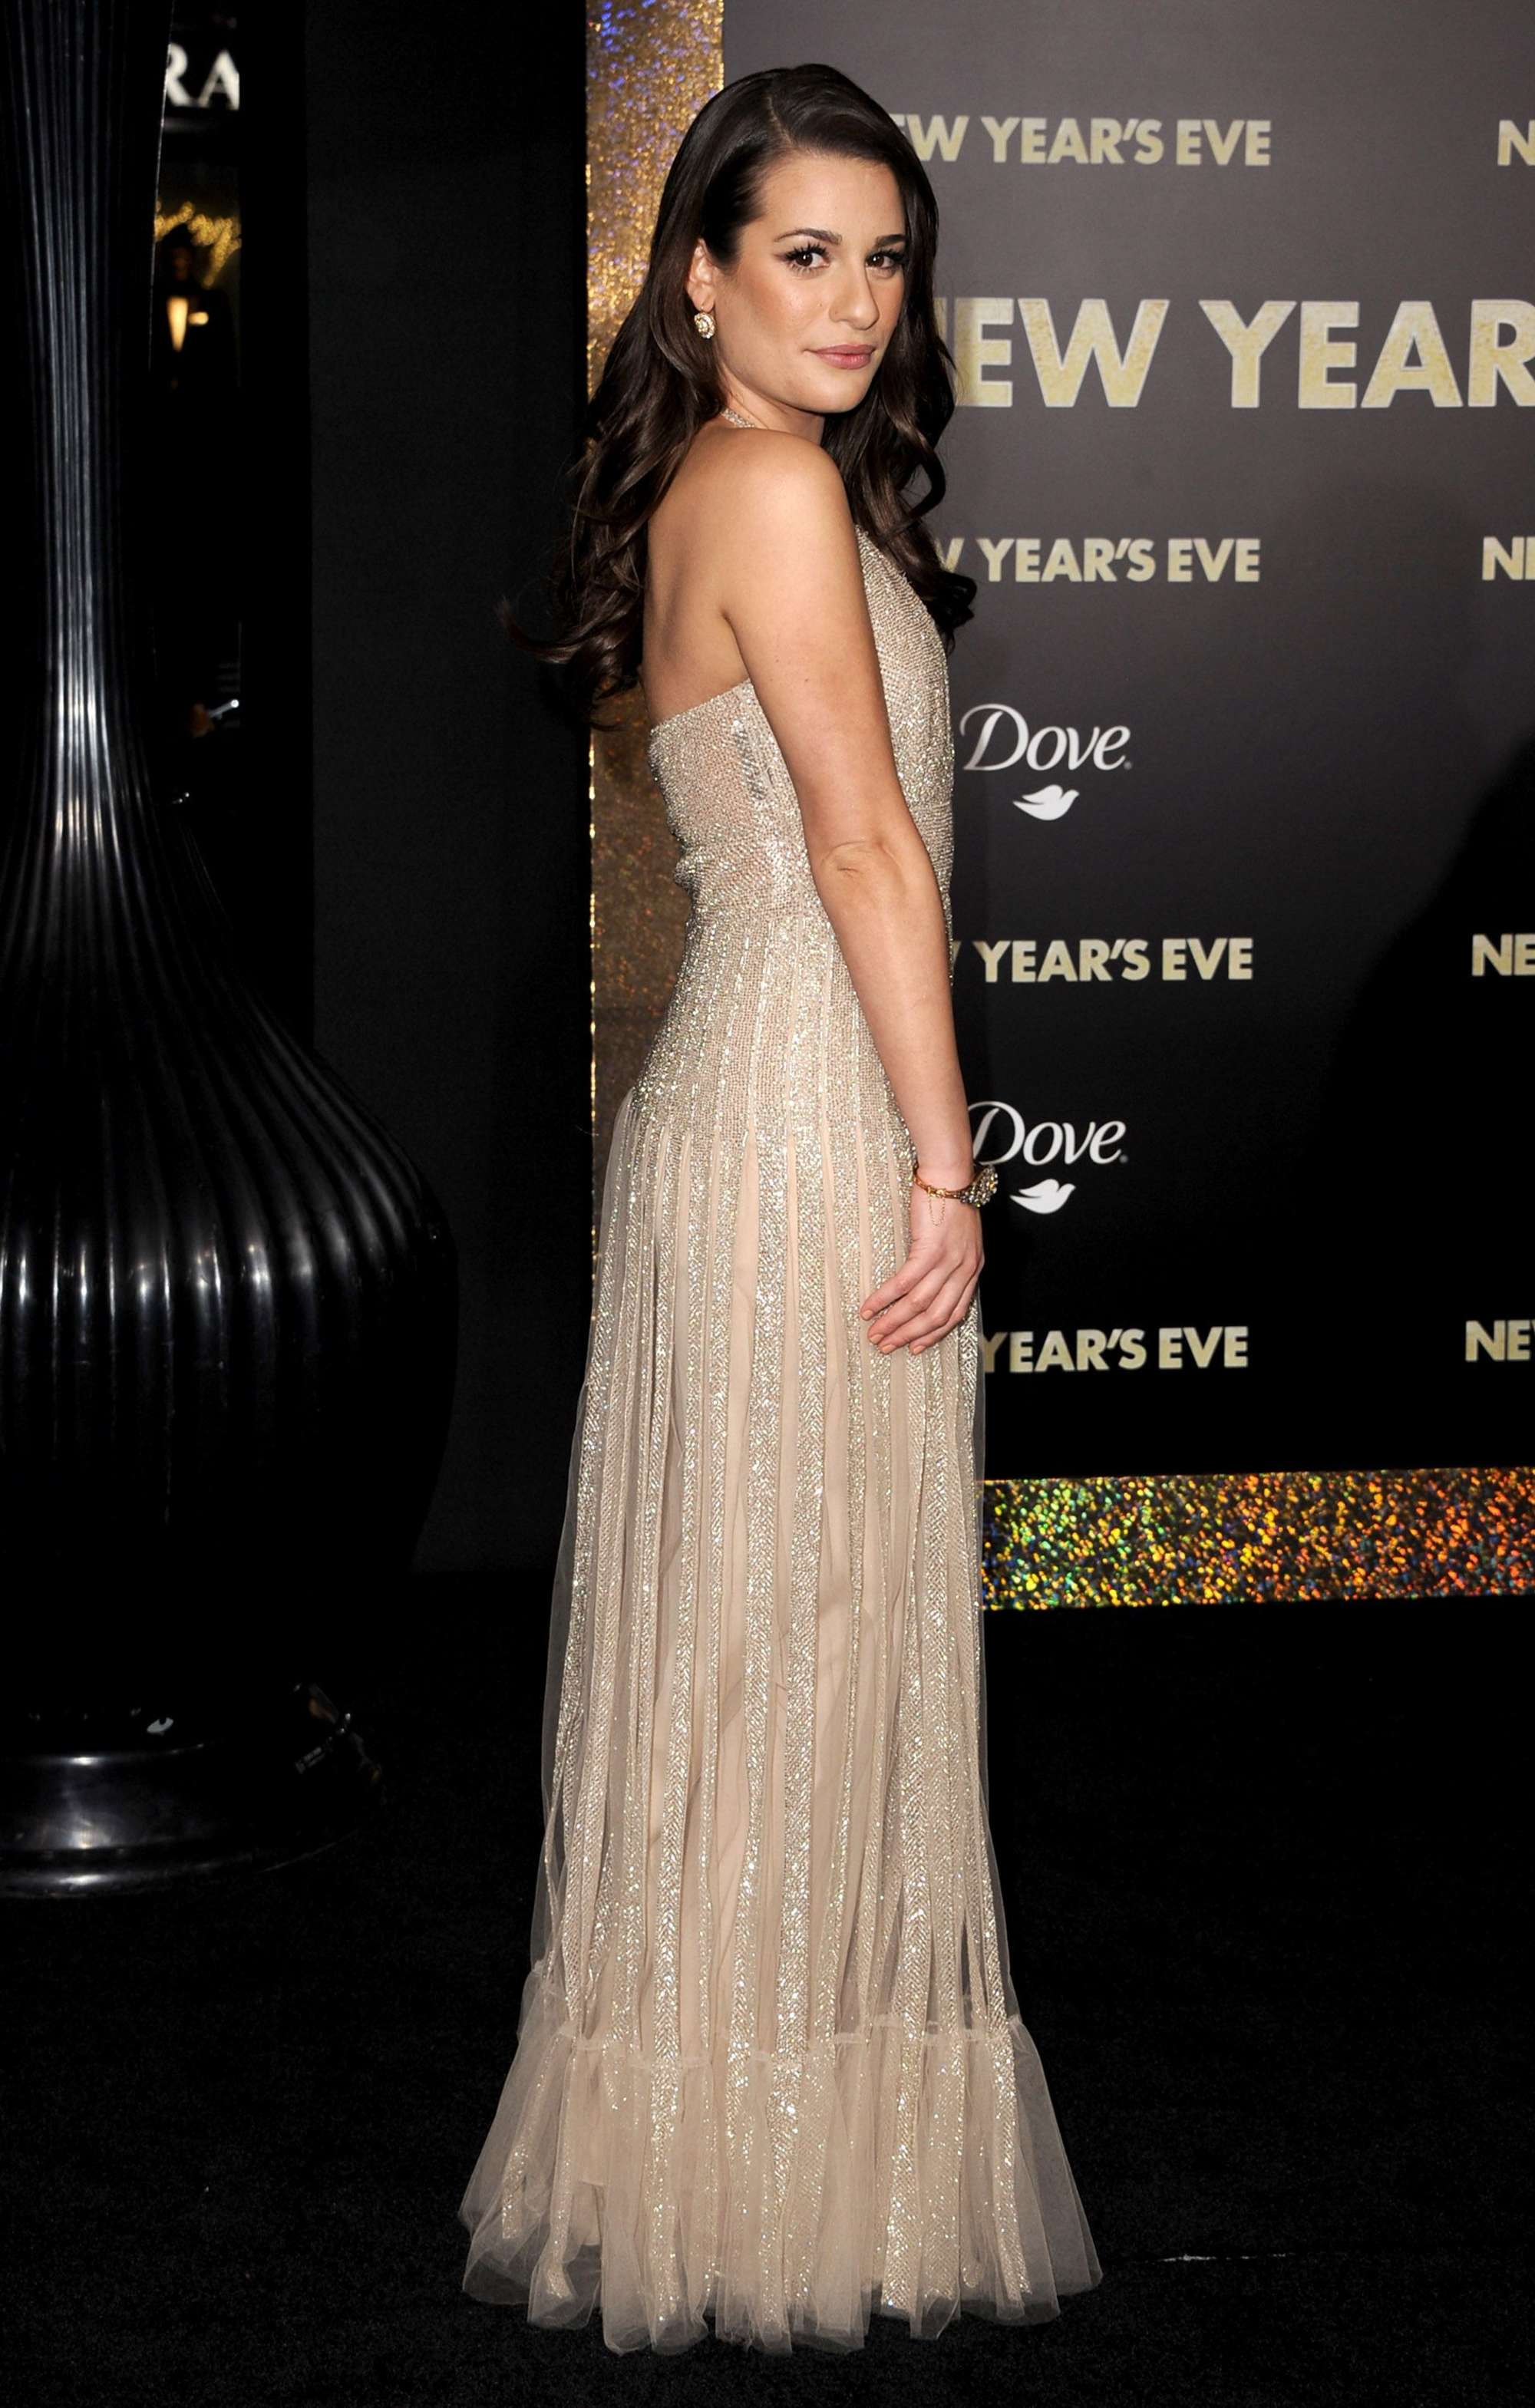 Lea Michele 2011 : Lea Michele – Cleavage at New Years Eve Premiere-02